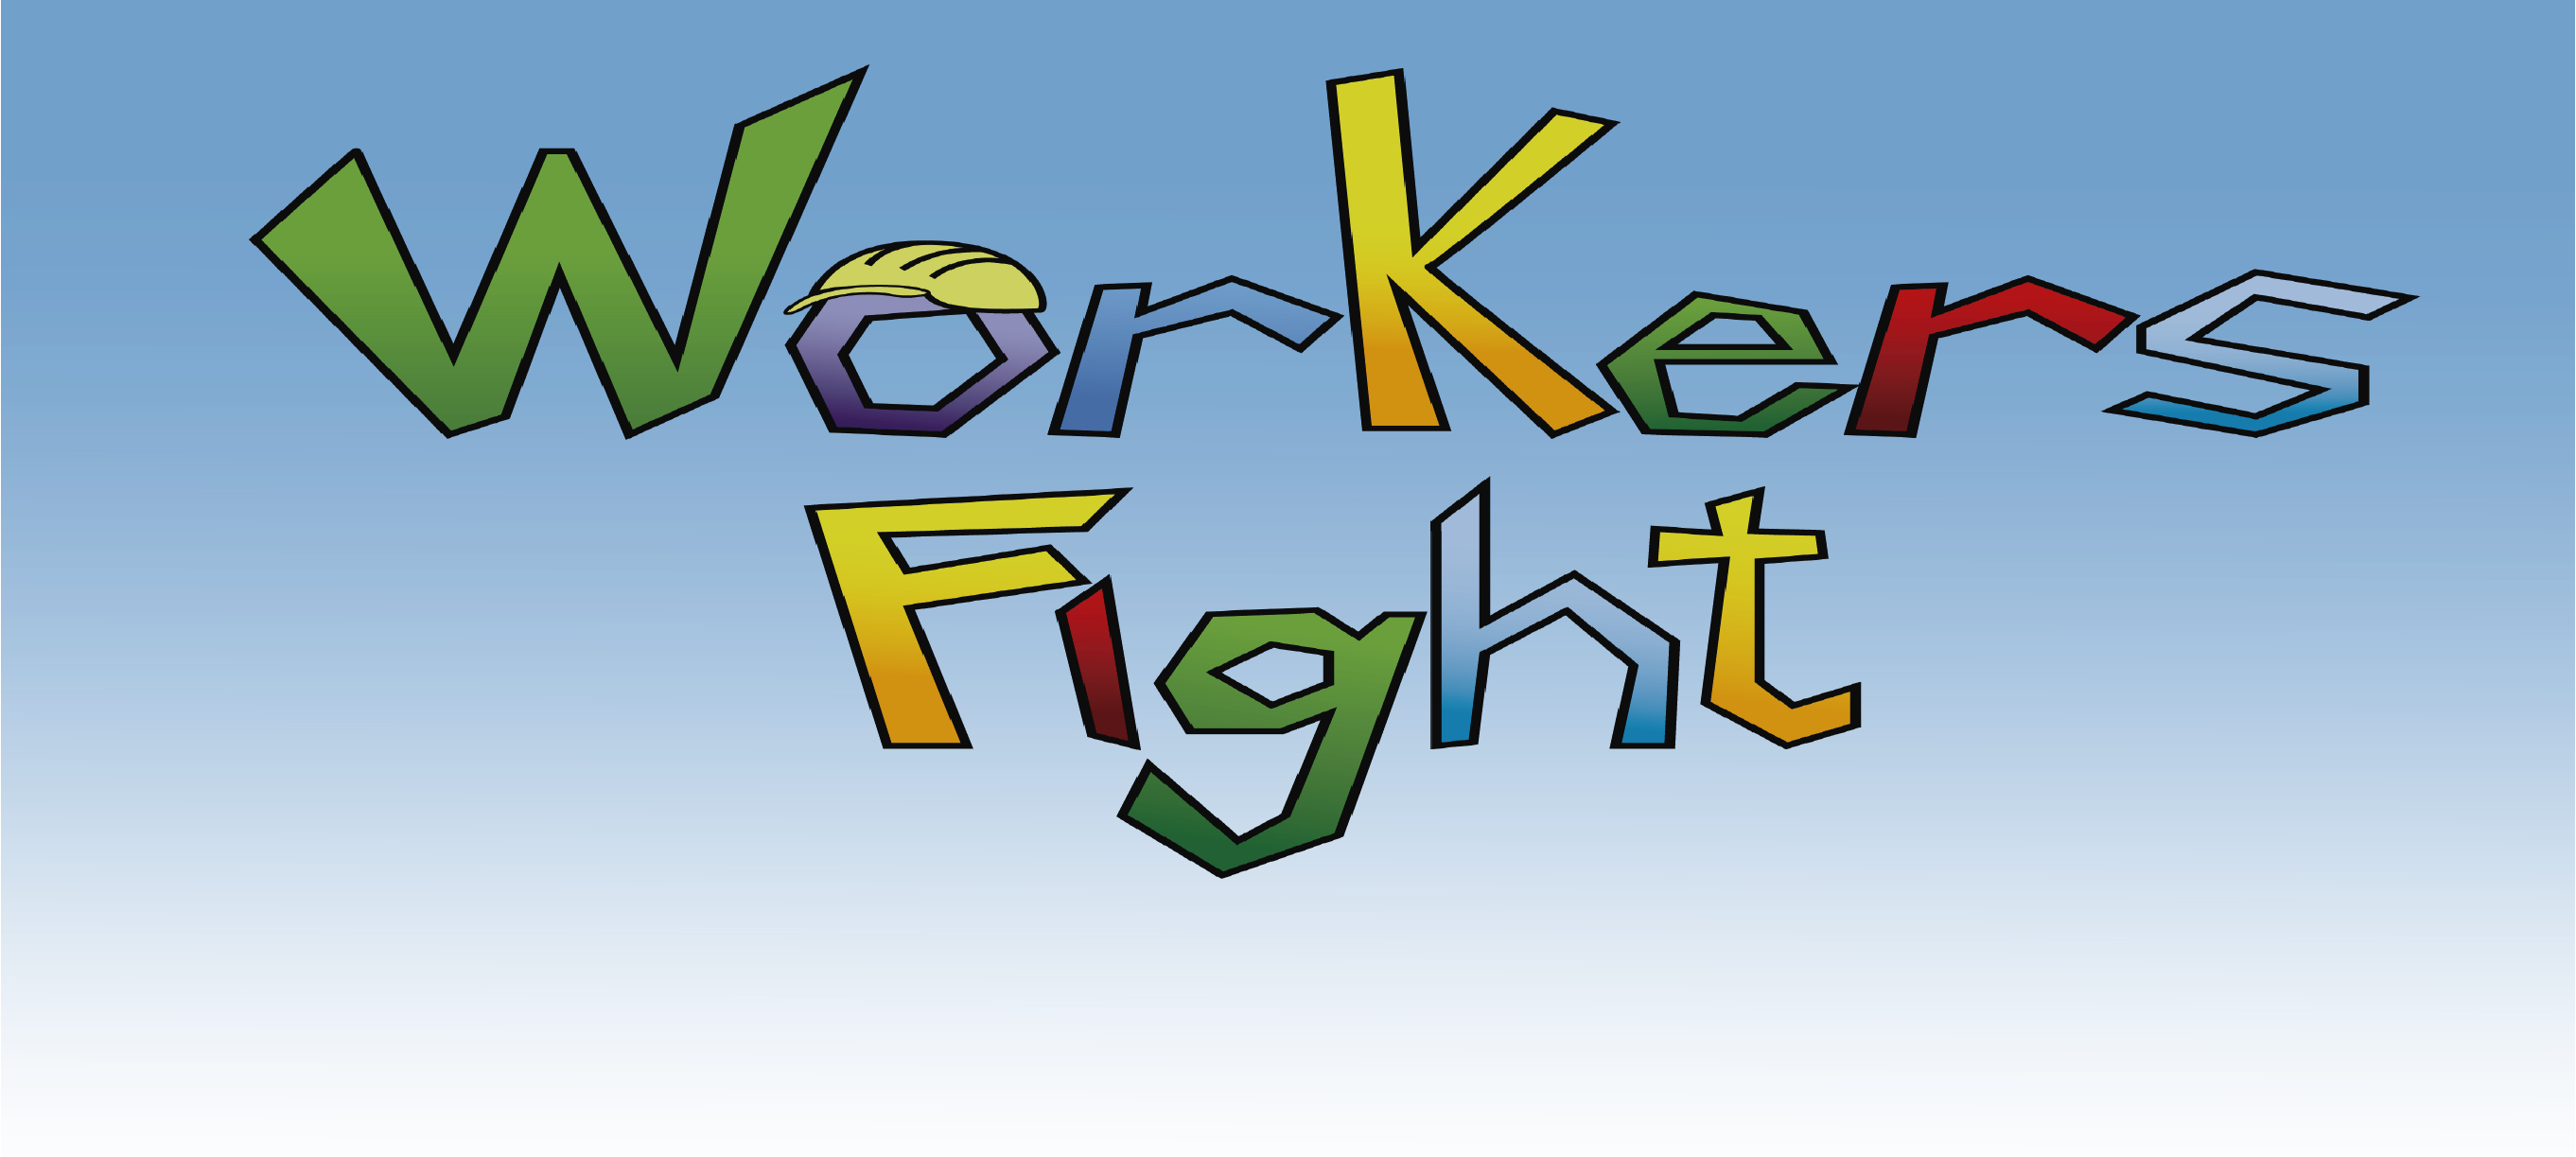 Workers Fight